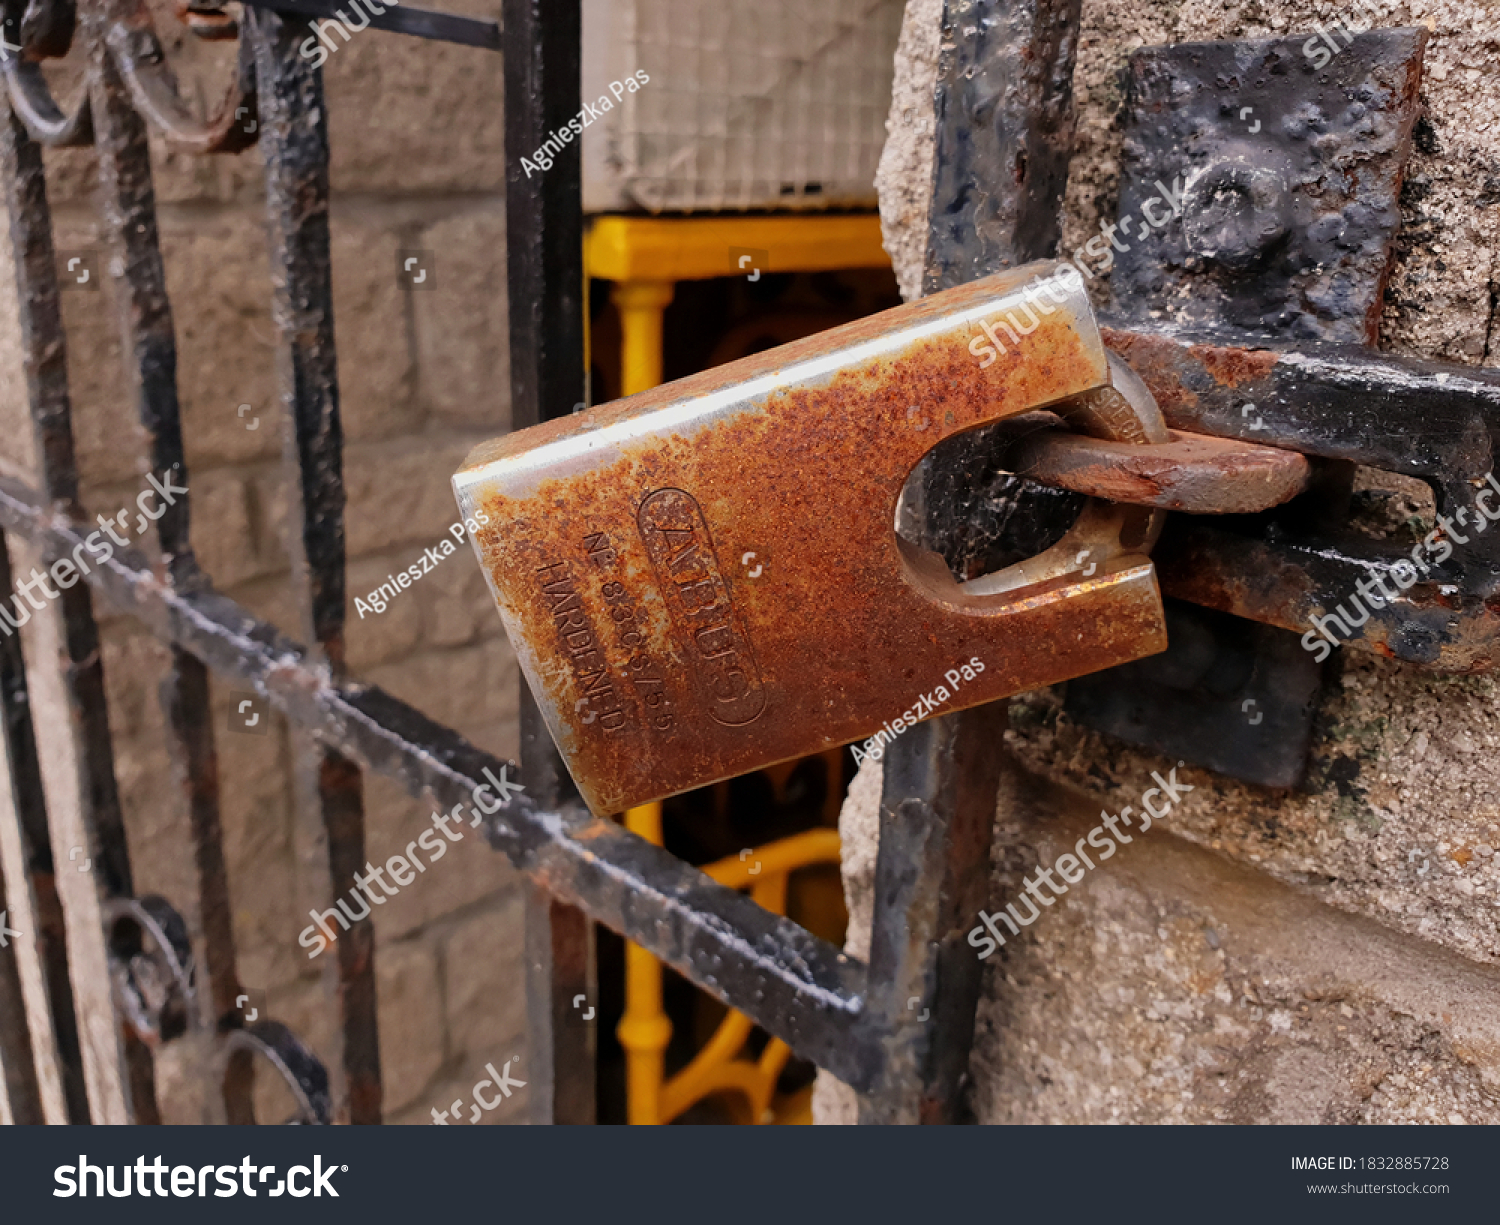 BRAY, CO. WICKLOW, IRELAND - AUGUST 09, 2020: Close up view of the closed rusty padlock. Closed entrance to the stadium of the Bray Wanderers Football Club in Bray, Ireland.